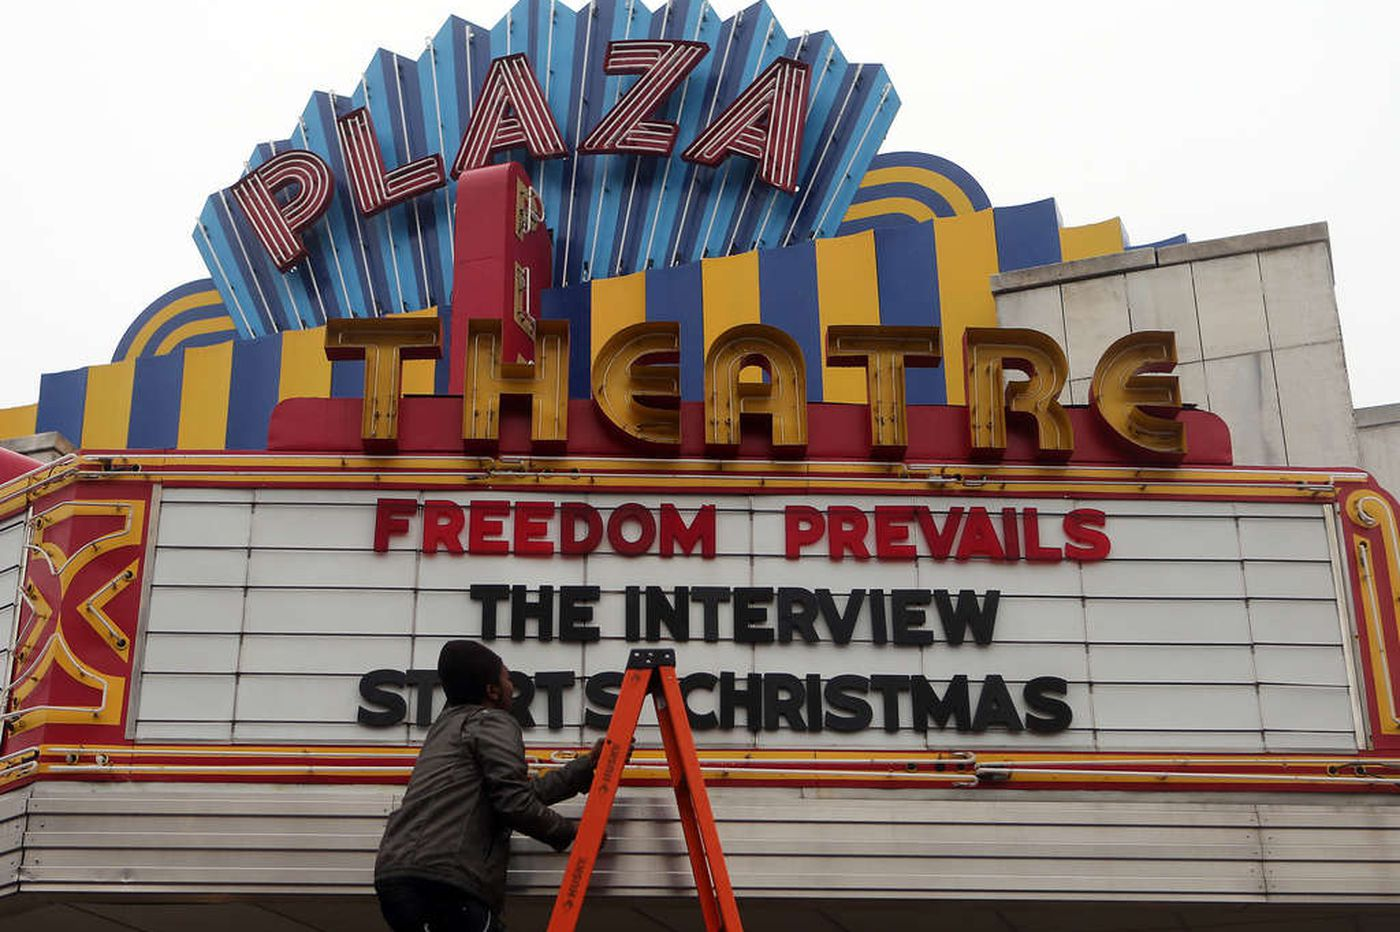 'Interview' plays on hundreds of screens